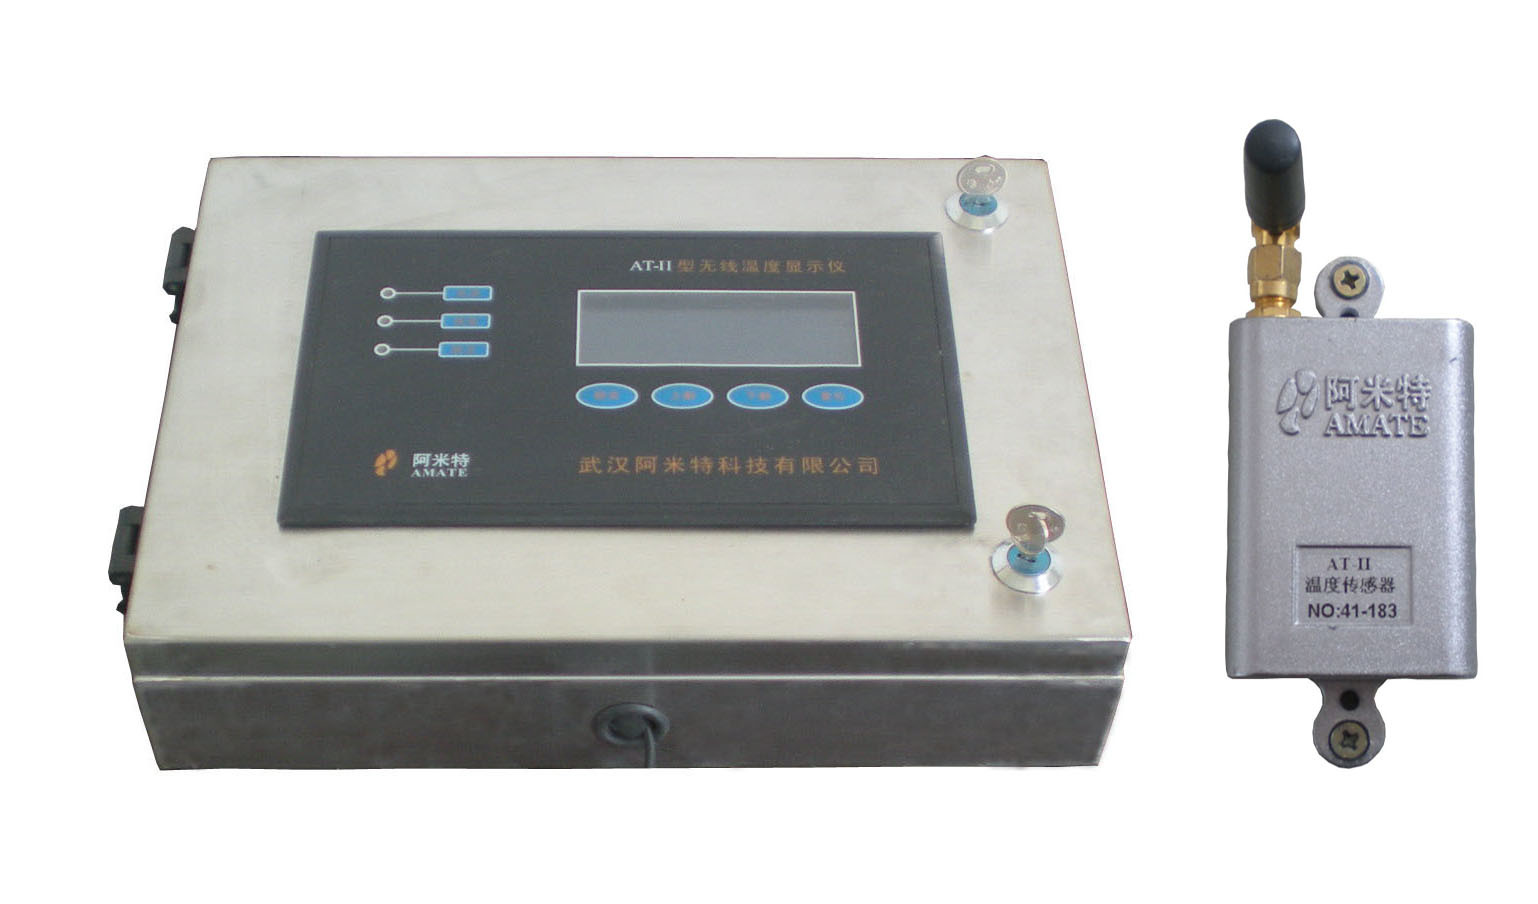 Climate Monitoring System : China wireless temperature monitoring system at ii